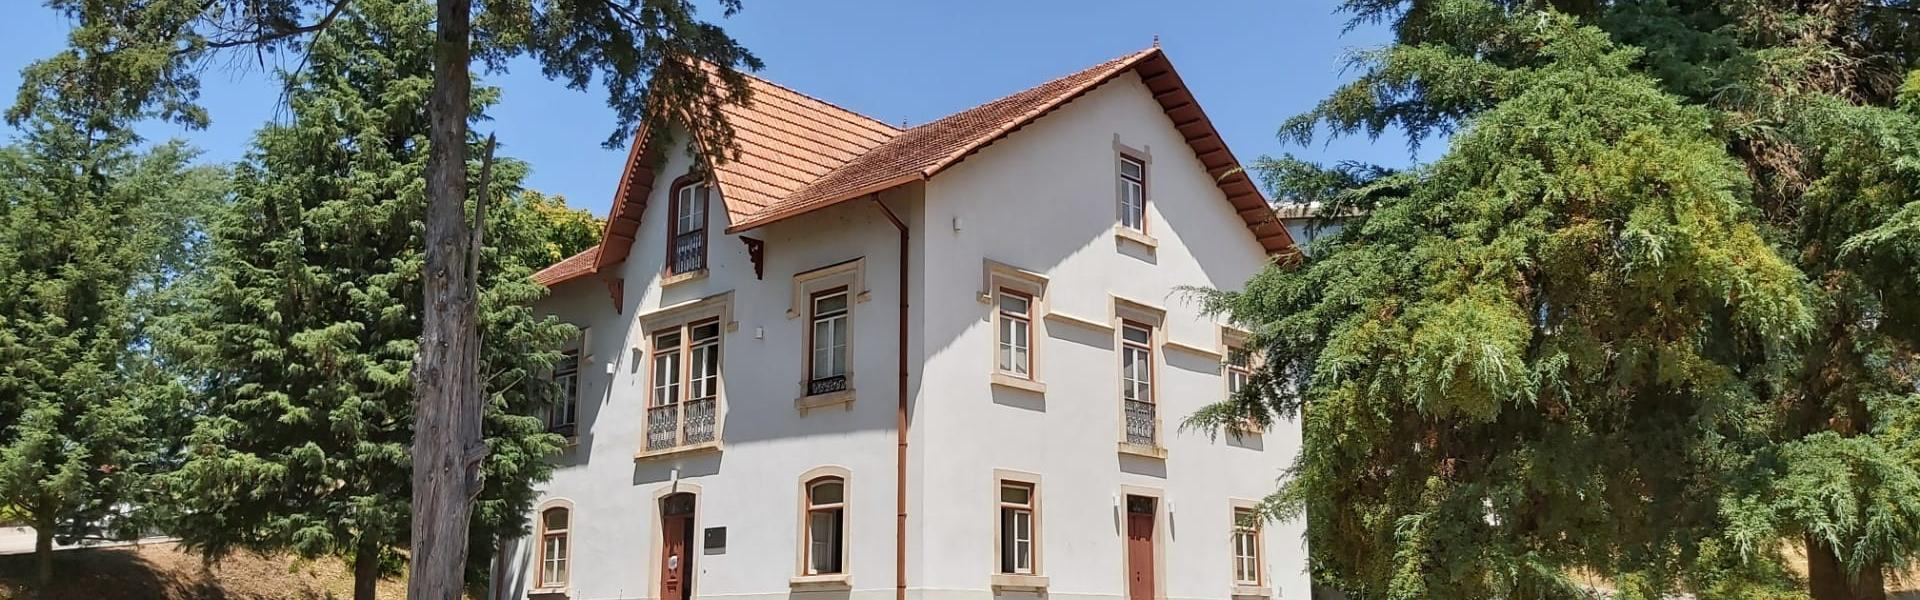 The Casa Costa Alemão building will be closed between the 1st and 15th August 2021